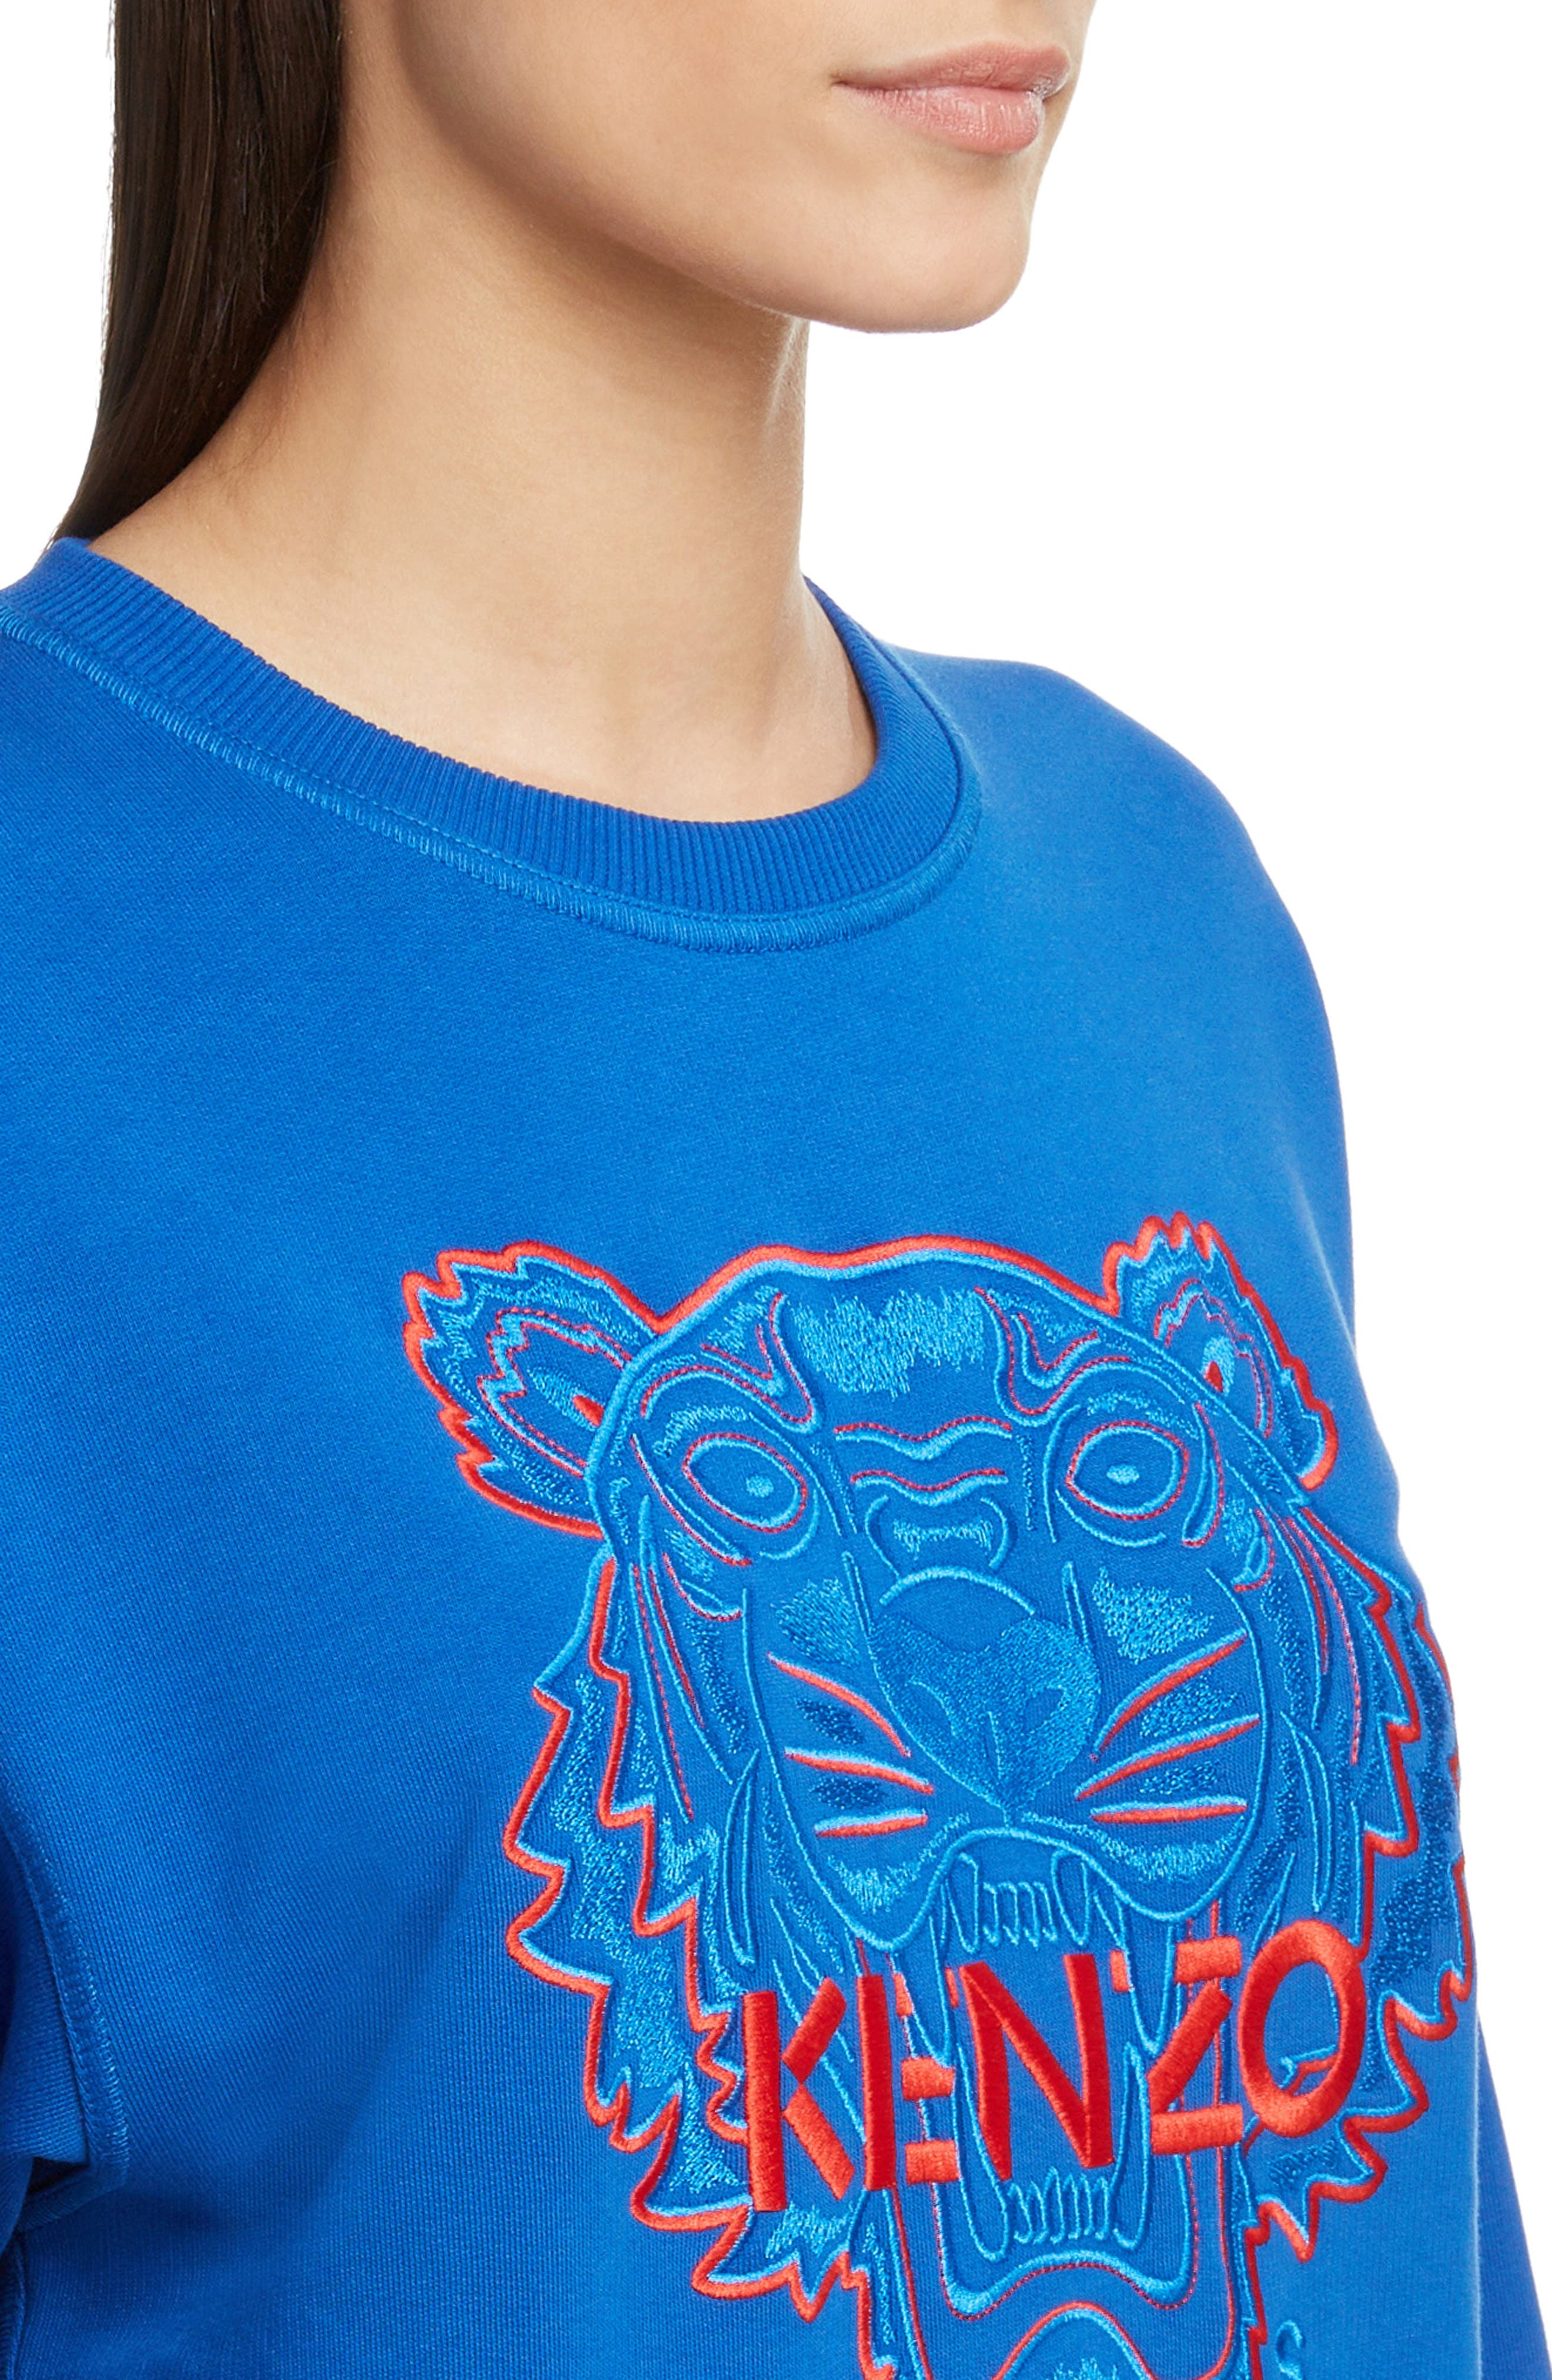 Bicolor Embroidered Tiger Sweatshirt,                             Alternate thumbnail 4, color,                             FRENCH BLUE